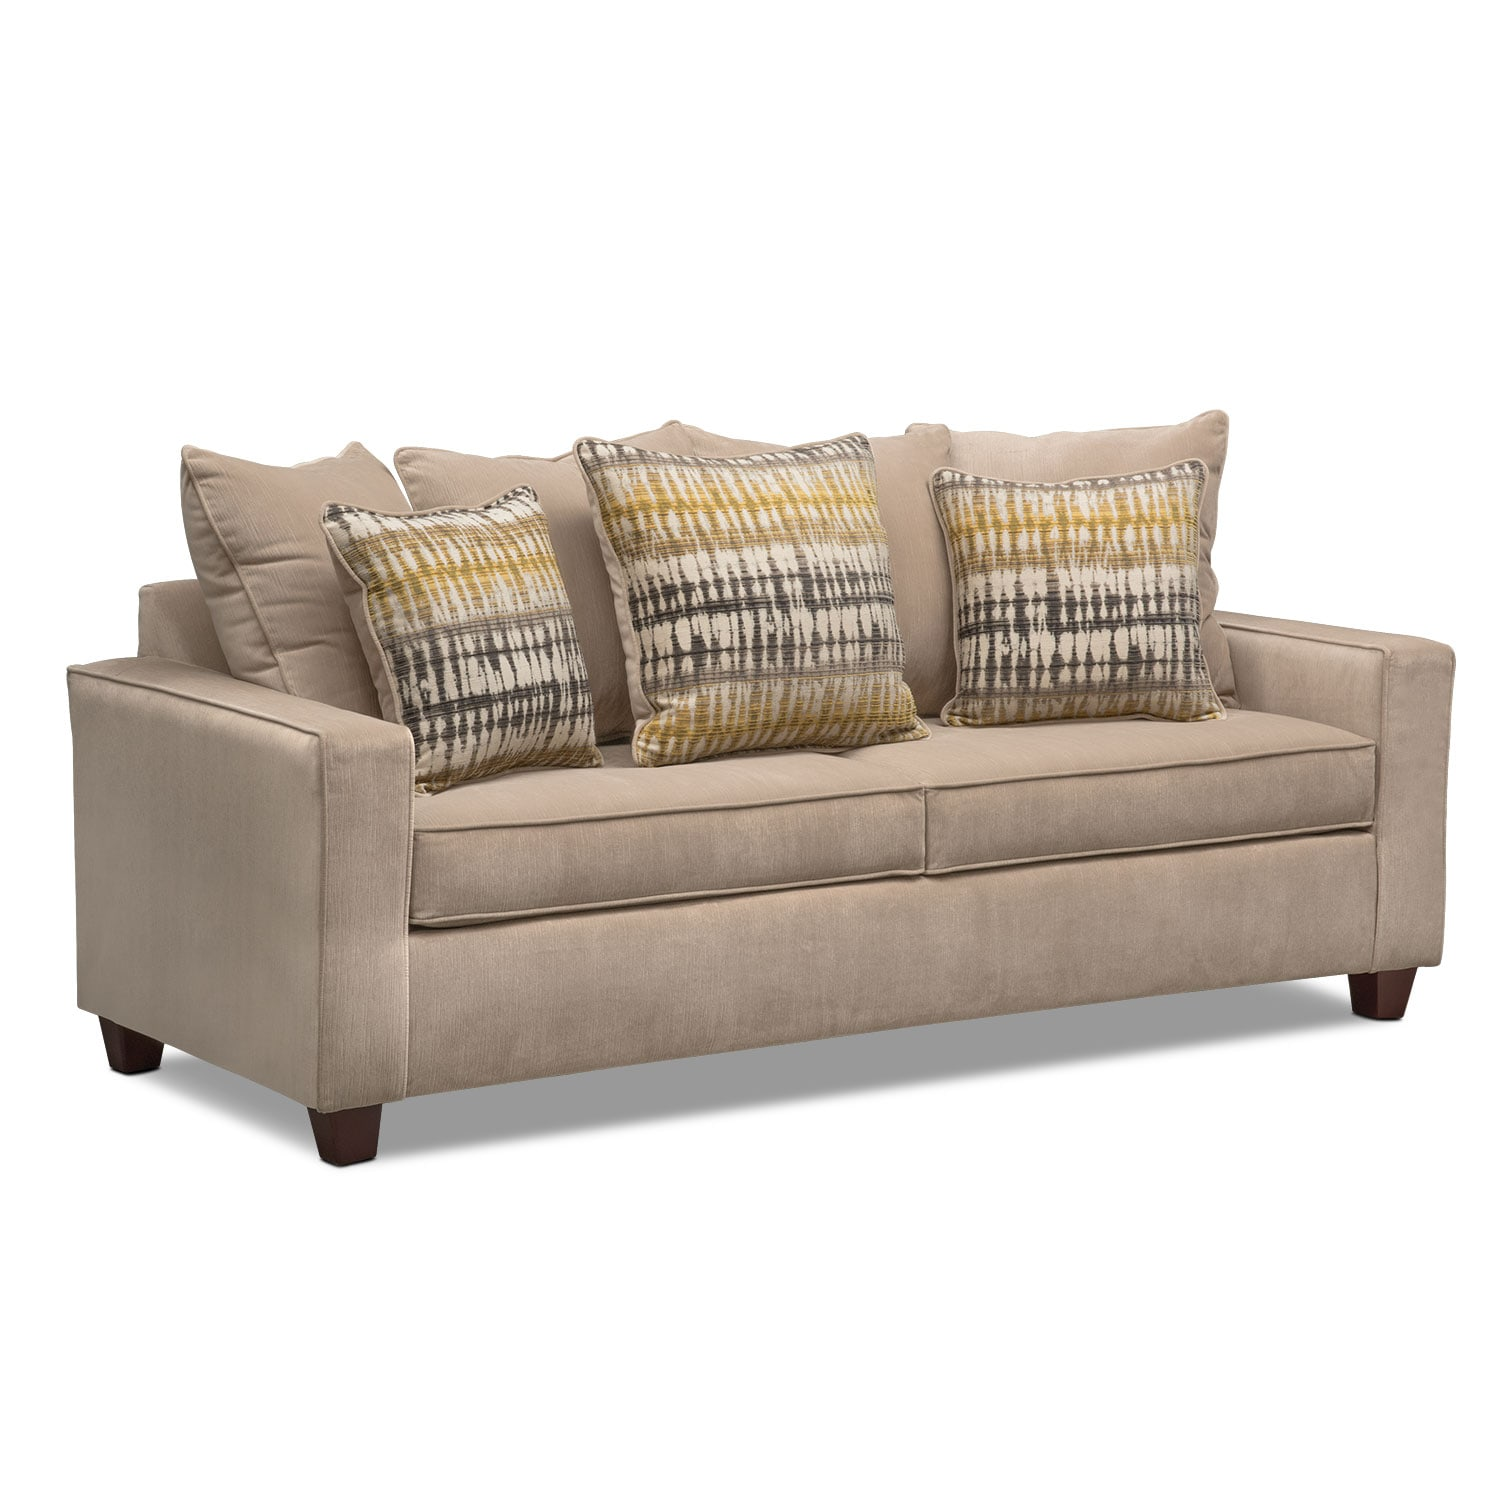 Living Room Furniture - Bryden Queen Memory Foam Sleeper Sofa - Beige